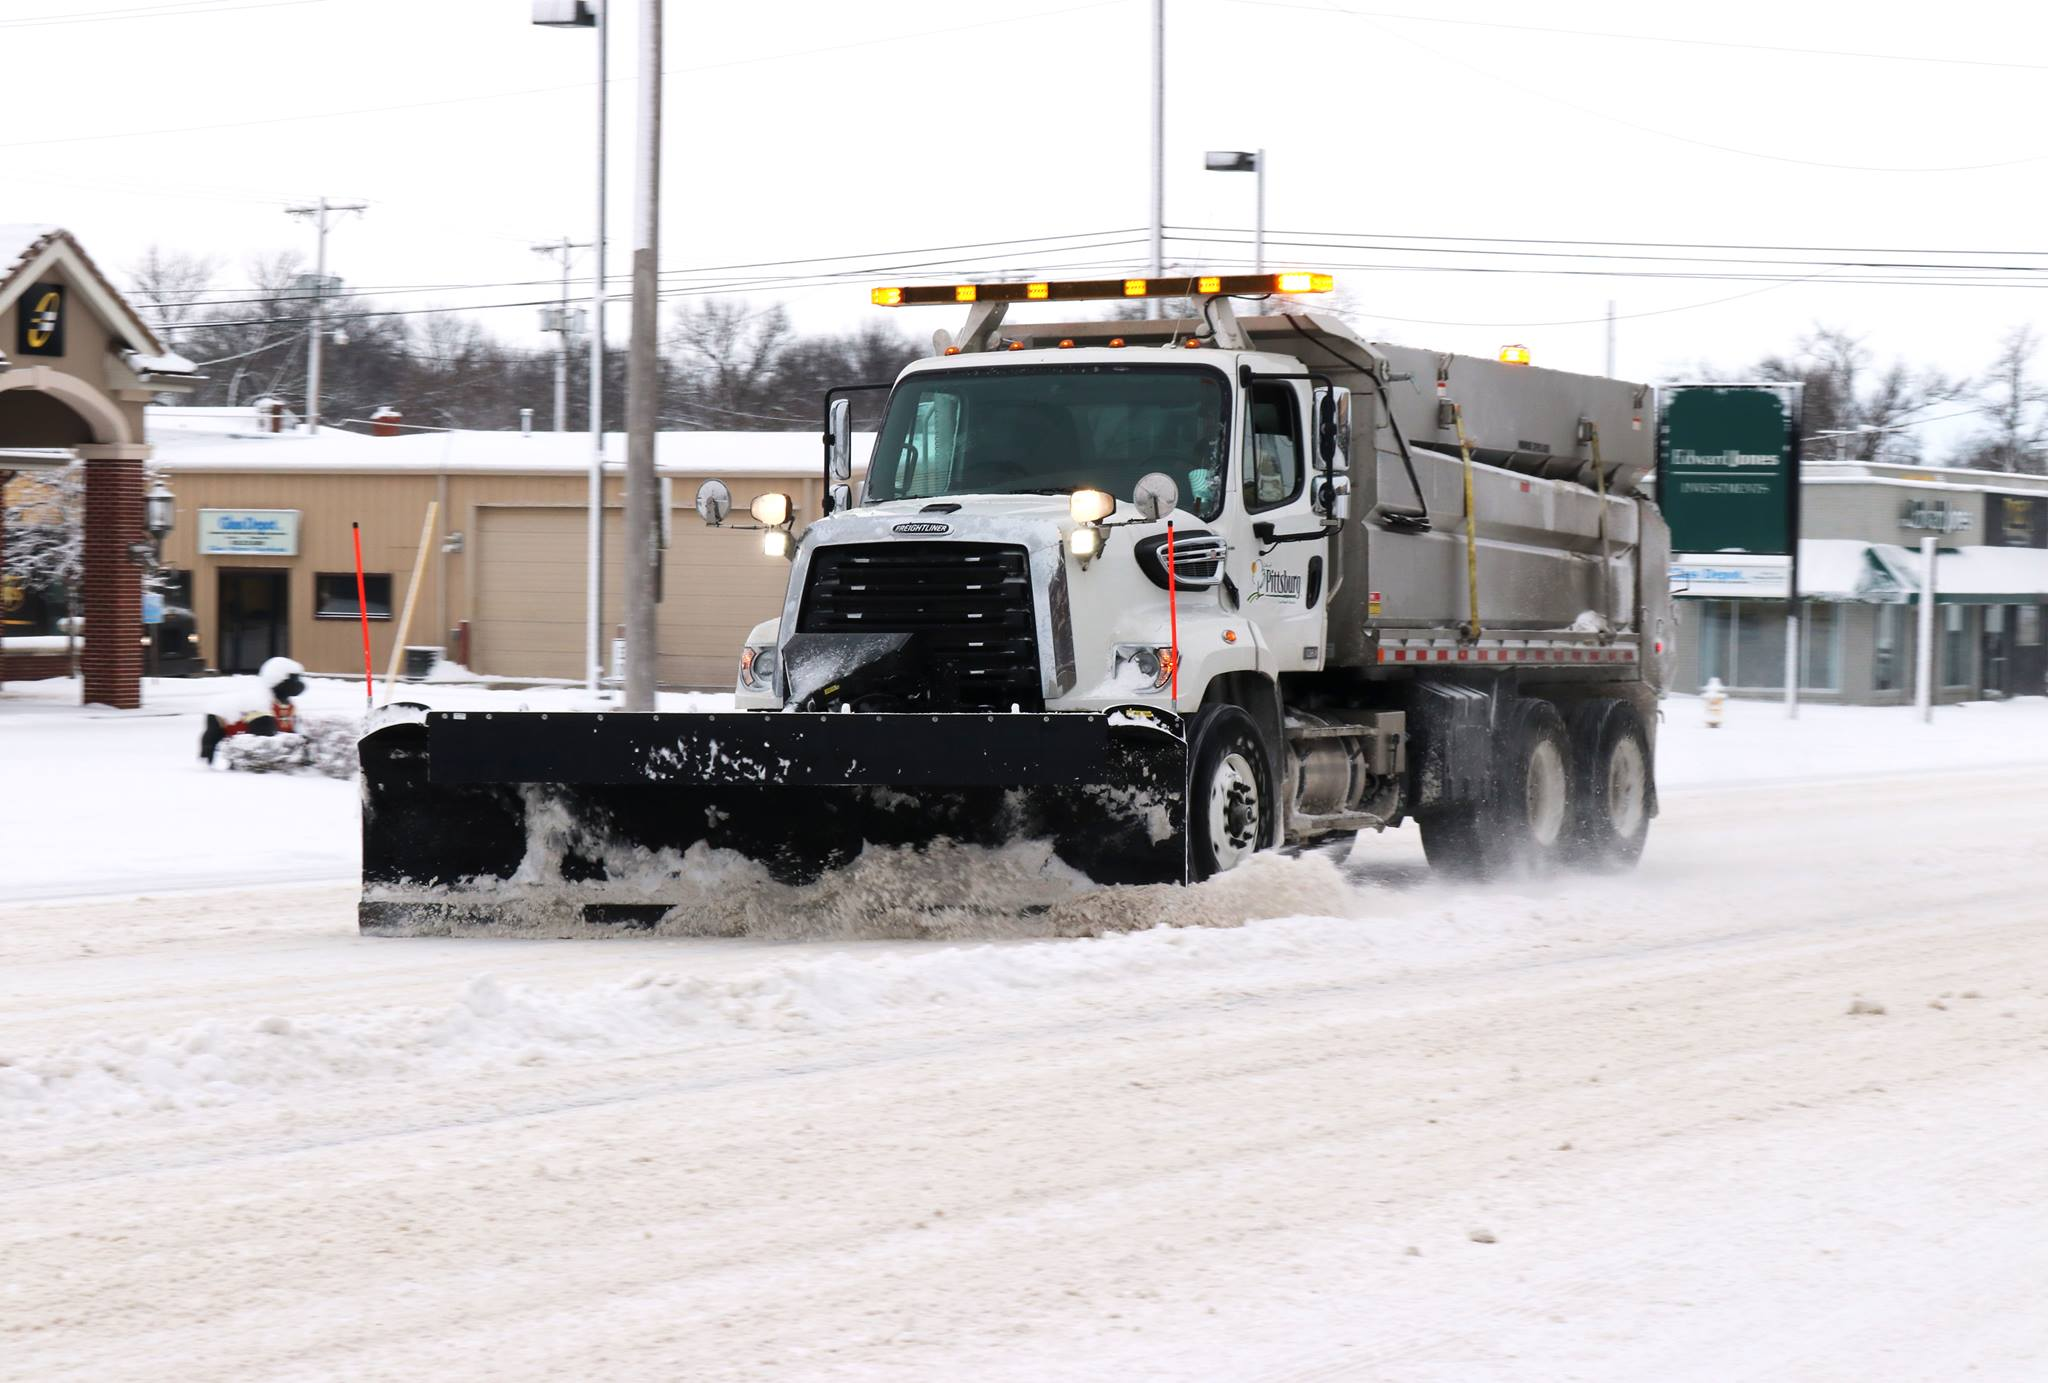 February Storm Response – by Daron Hall